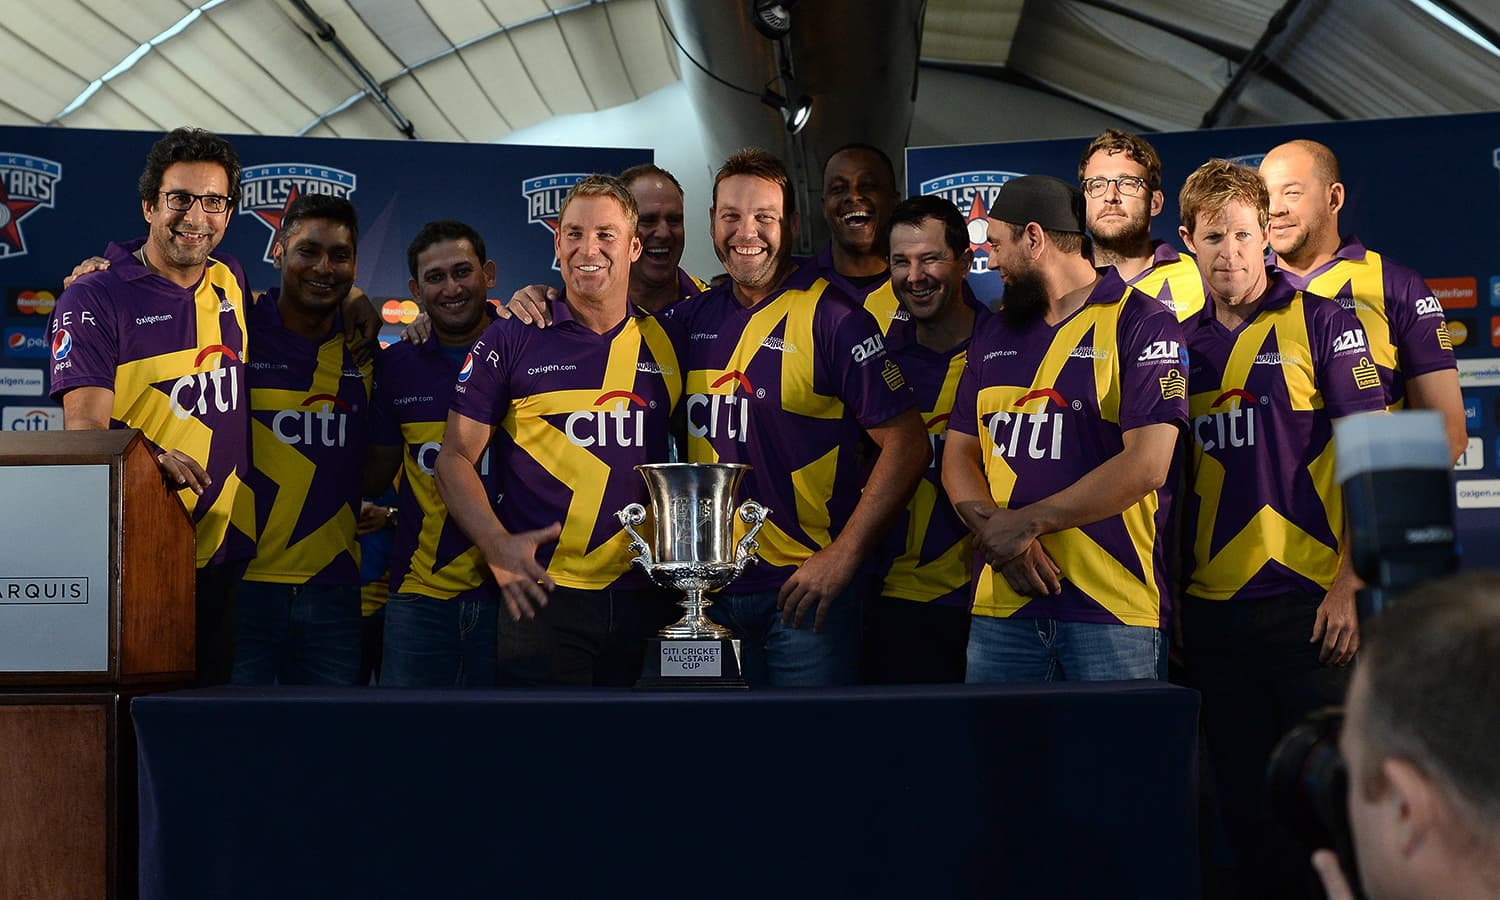 """Australia's Shane Warne and his team pose during a press conference in New York on November 5, 2015. Retired Indian cricketer Sachin Tendulkar and Warne will lead a lineup of renowned cricket players from around the world in the inaugural """"Cricket All-Stars,"""" a three-game series to be played in Major League Baseball stadiums in New York , Houston and Los Angeles, to promote cricket the US. AFP PHOTO/JEWEL SAMAD"""